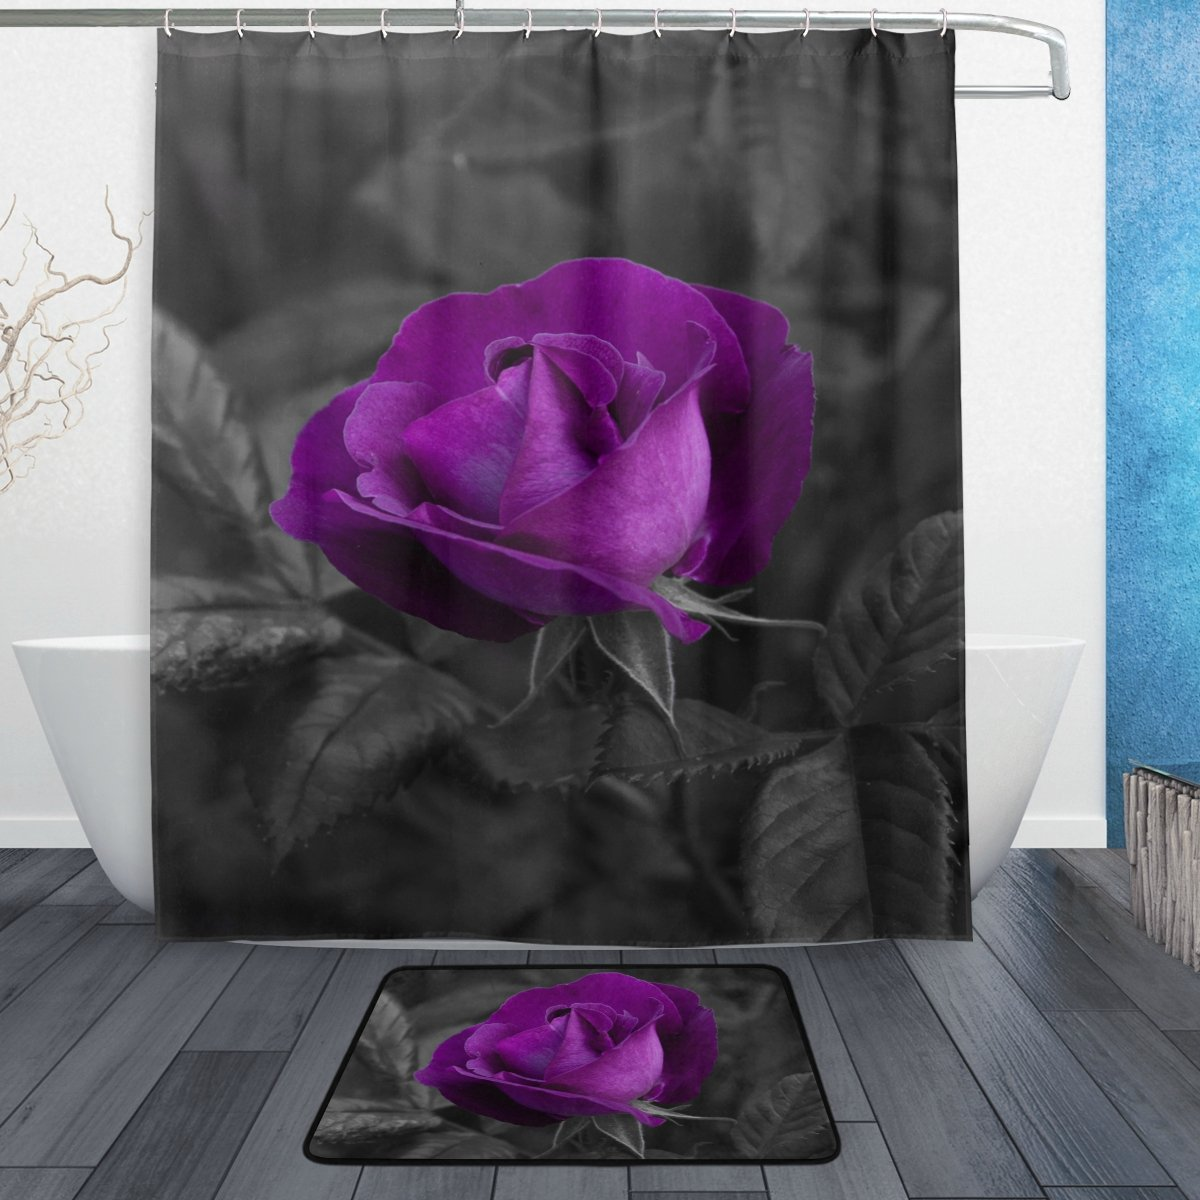 ALAZA Set of 2 Purple Flower 60 X 72 Inches Shower Curtain and Mat Set, Rose Floral Waterproof Fabric Bathroom Curtain and Rug Set with Hooks